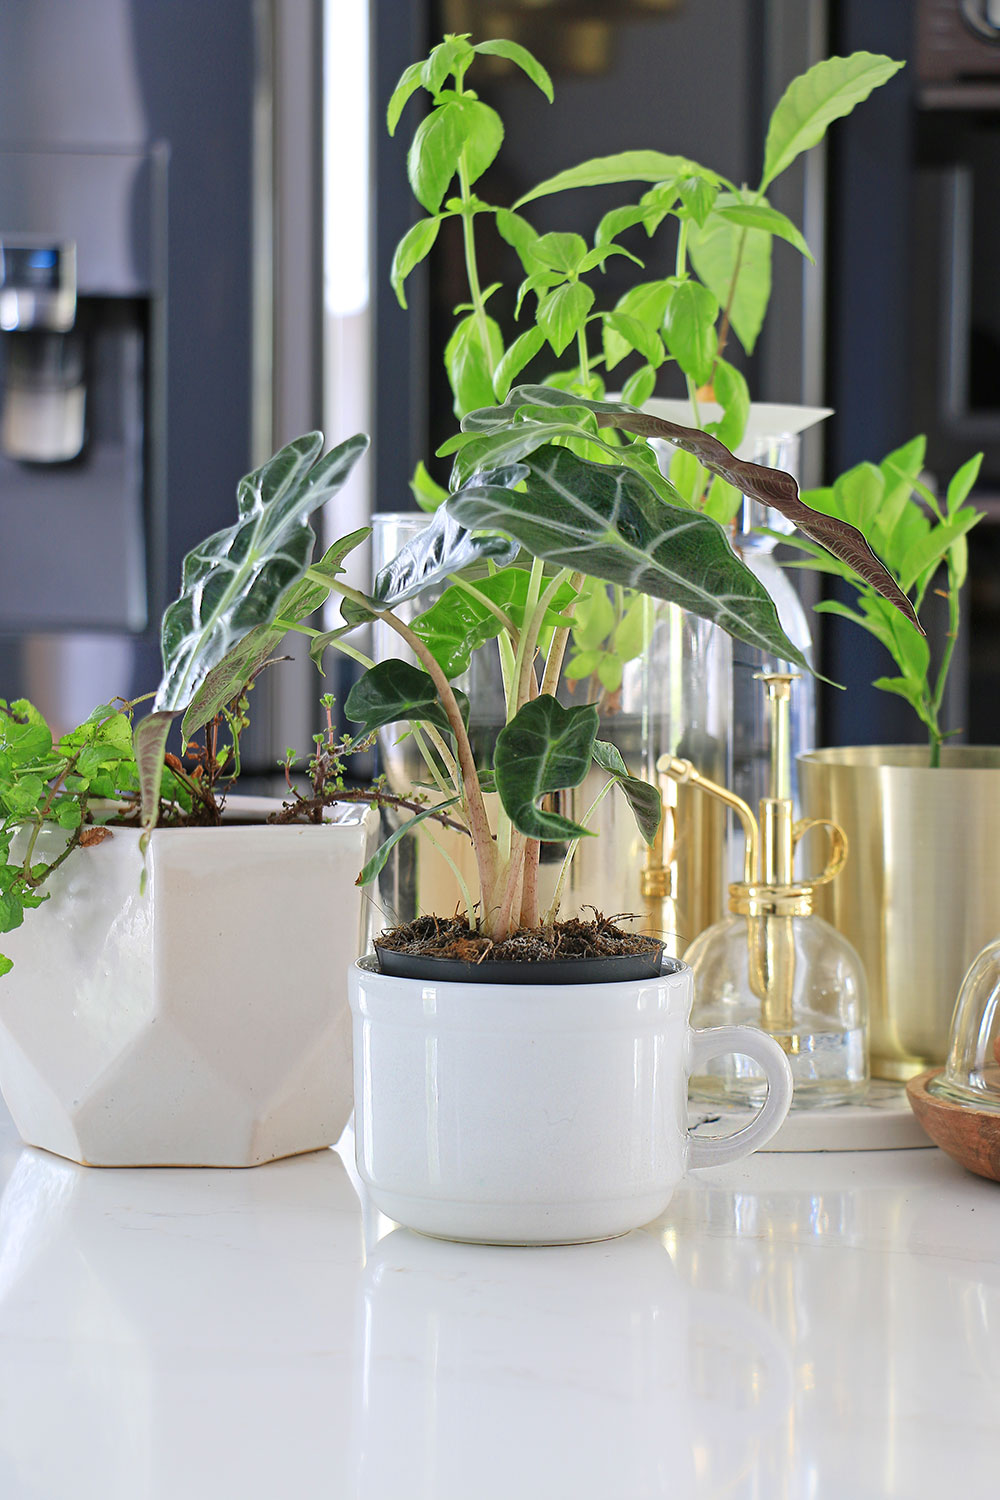 Potted-plants-on-countertop